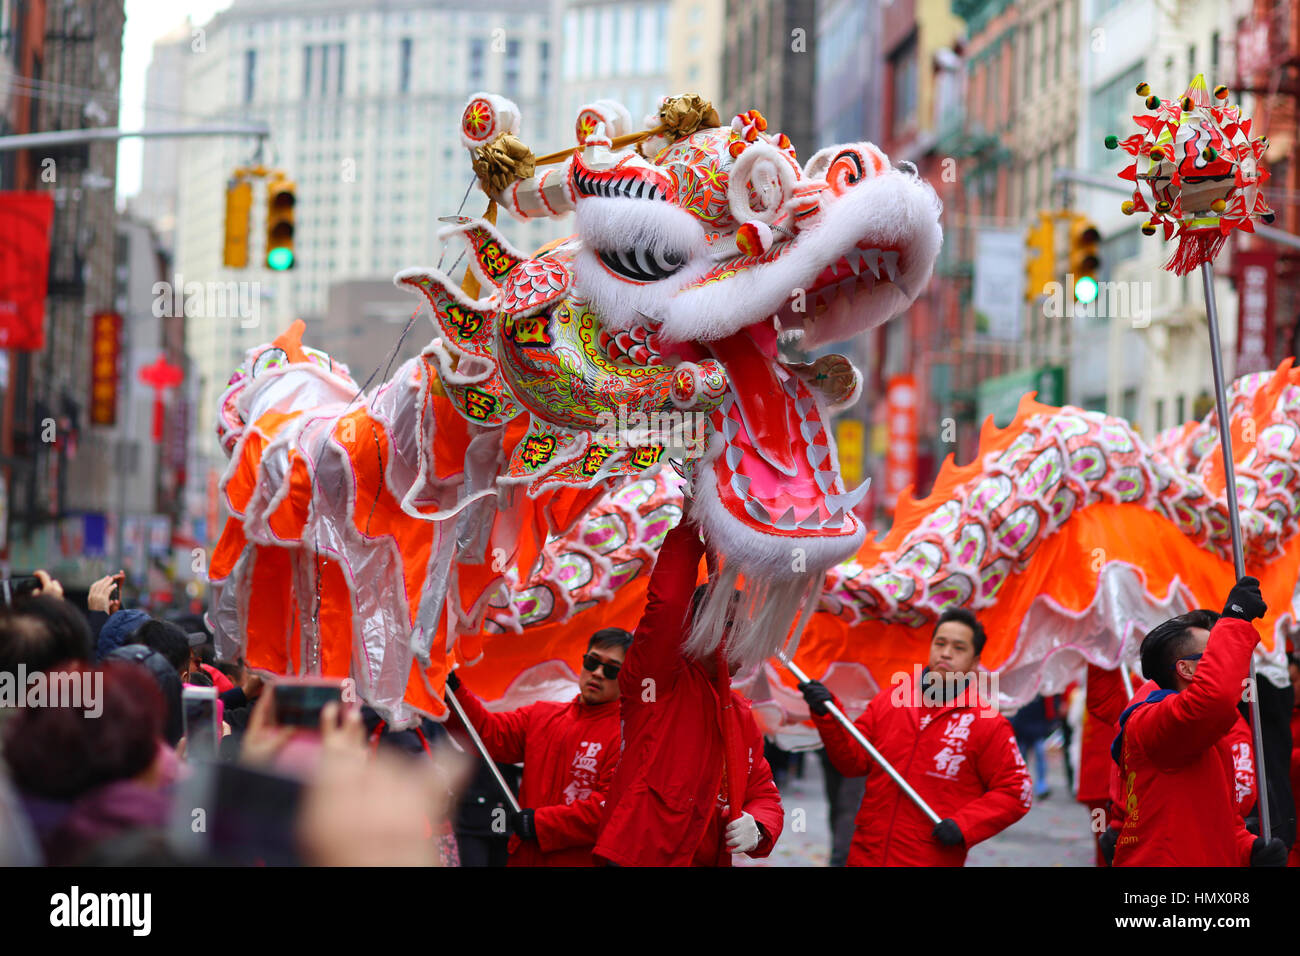 New York, USA. 05th Feb, 2017. New York Chinatown celebrating the Lunar New Year, Year of the Rooster with Lion - Stock Image